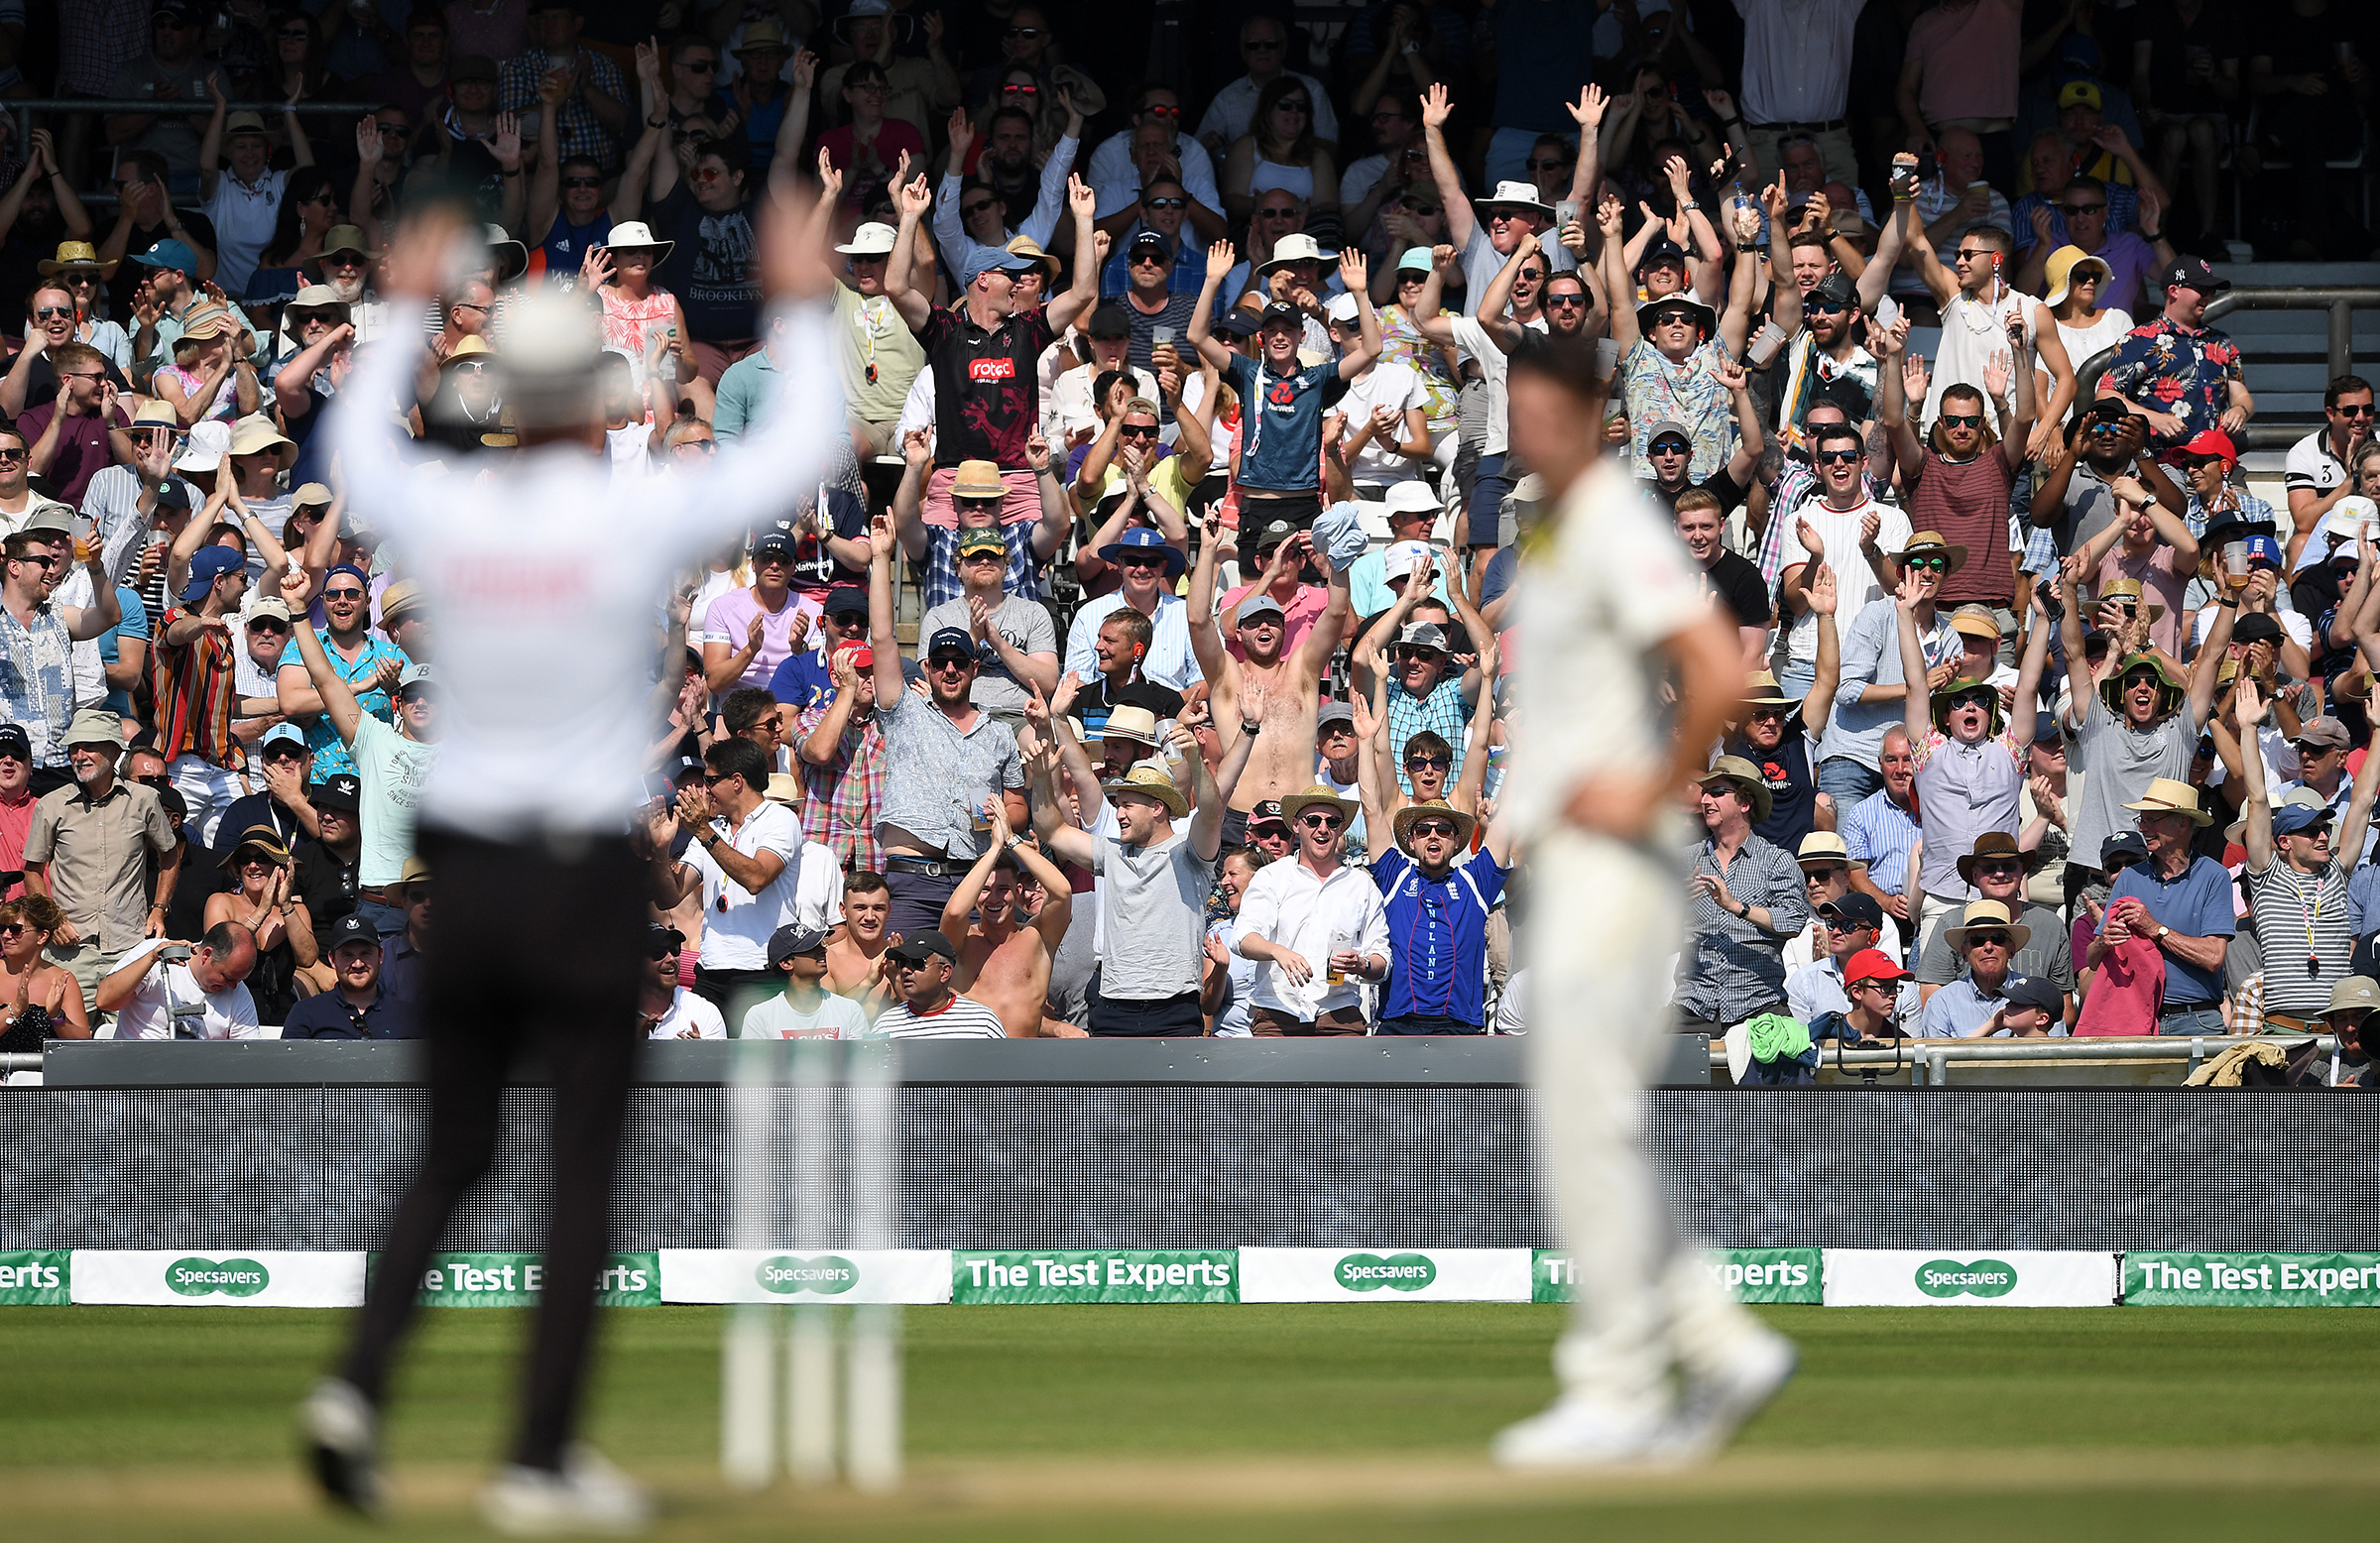 The Headingley crowd finds full voice during Stokes' knock // Getty